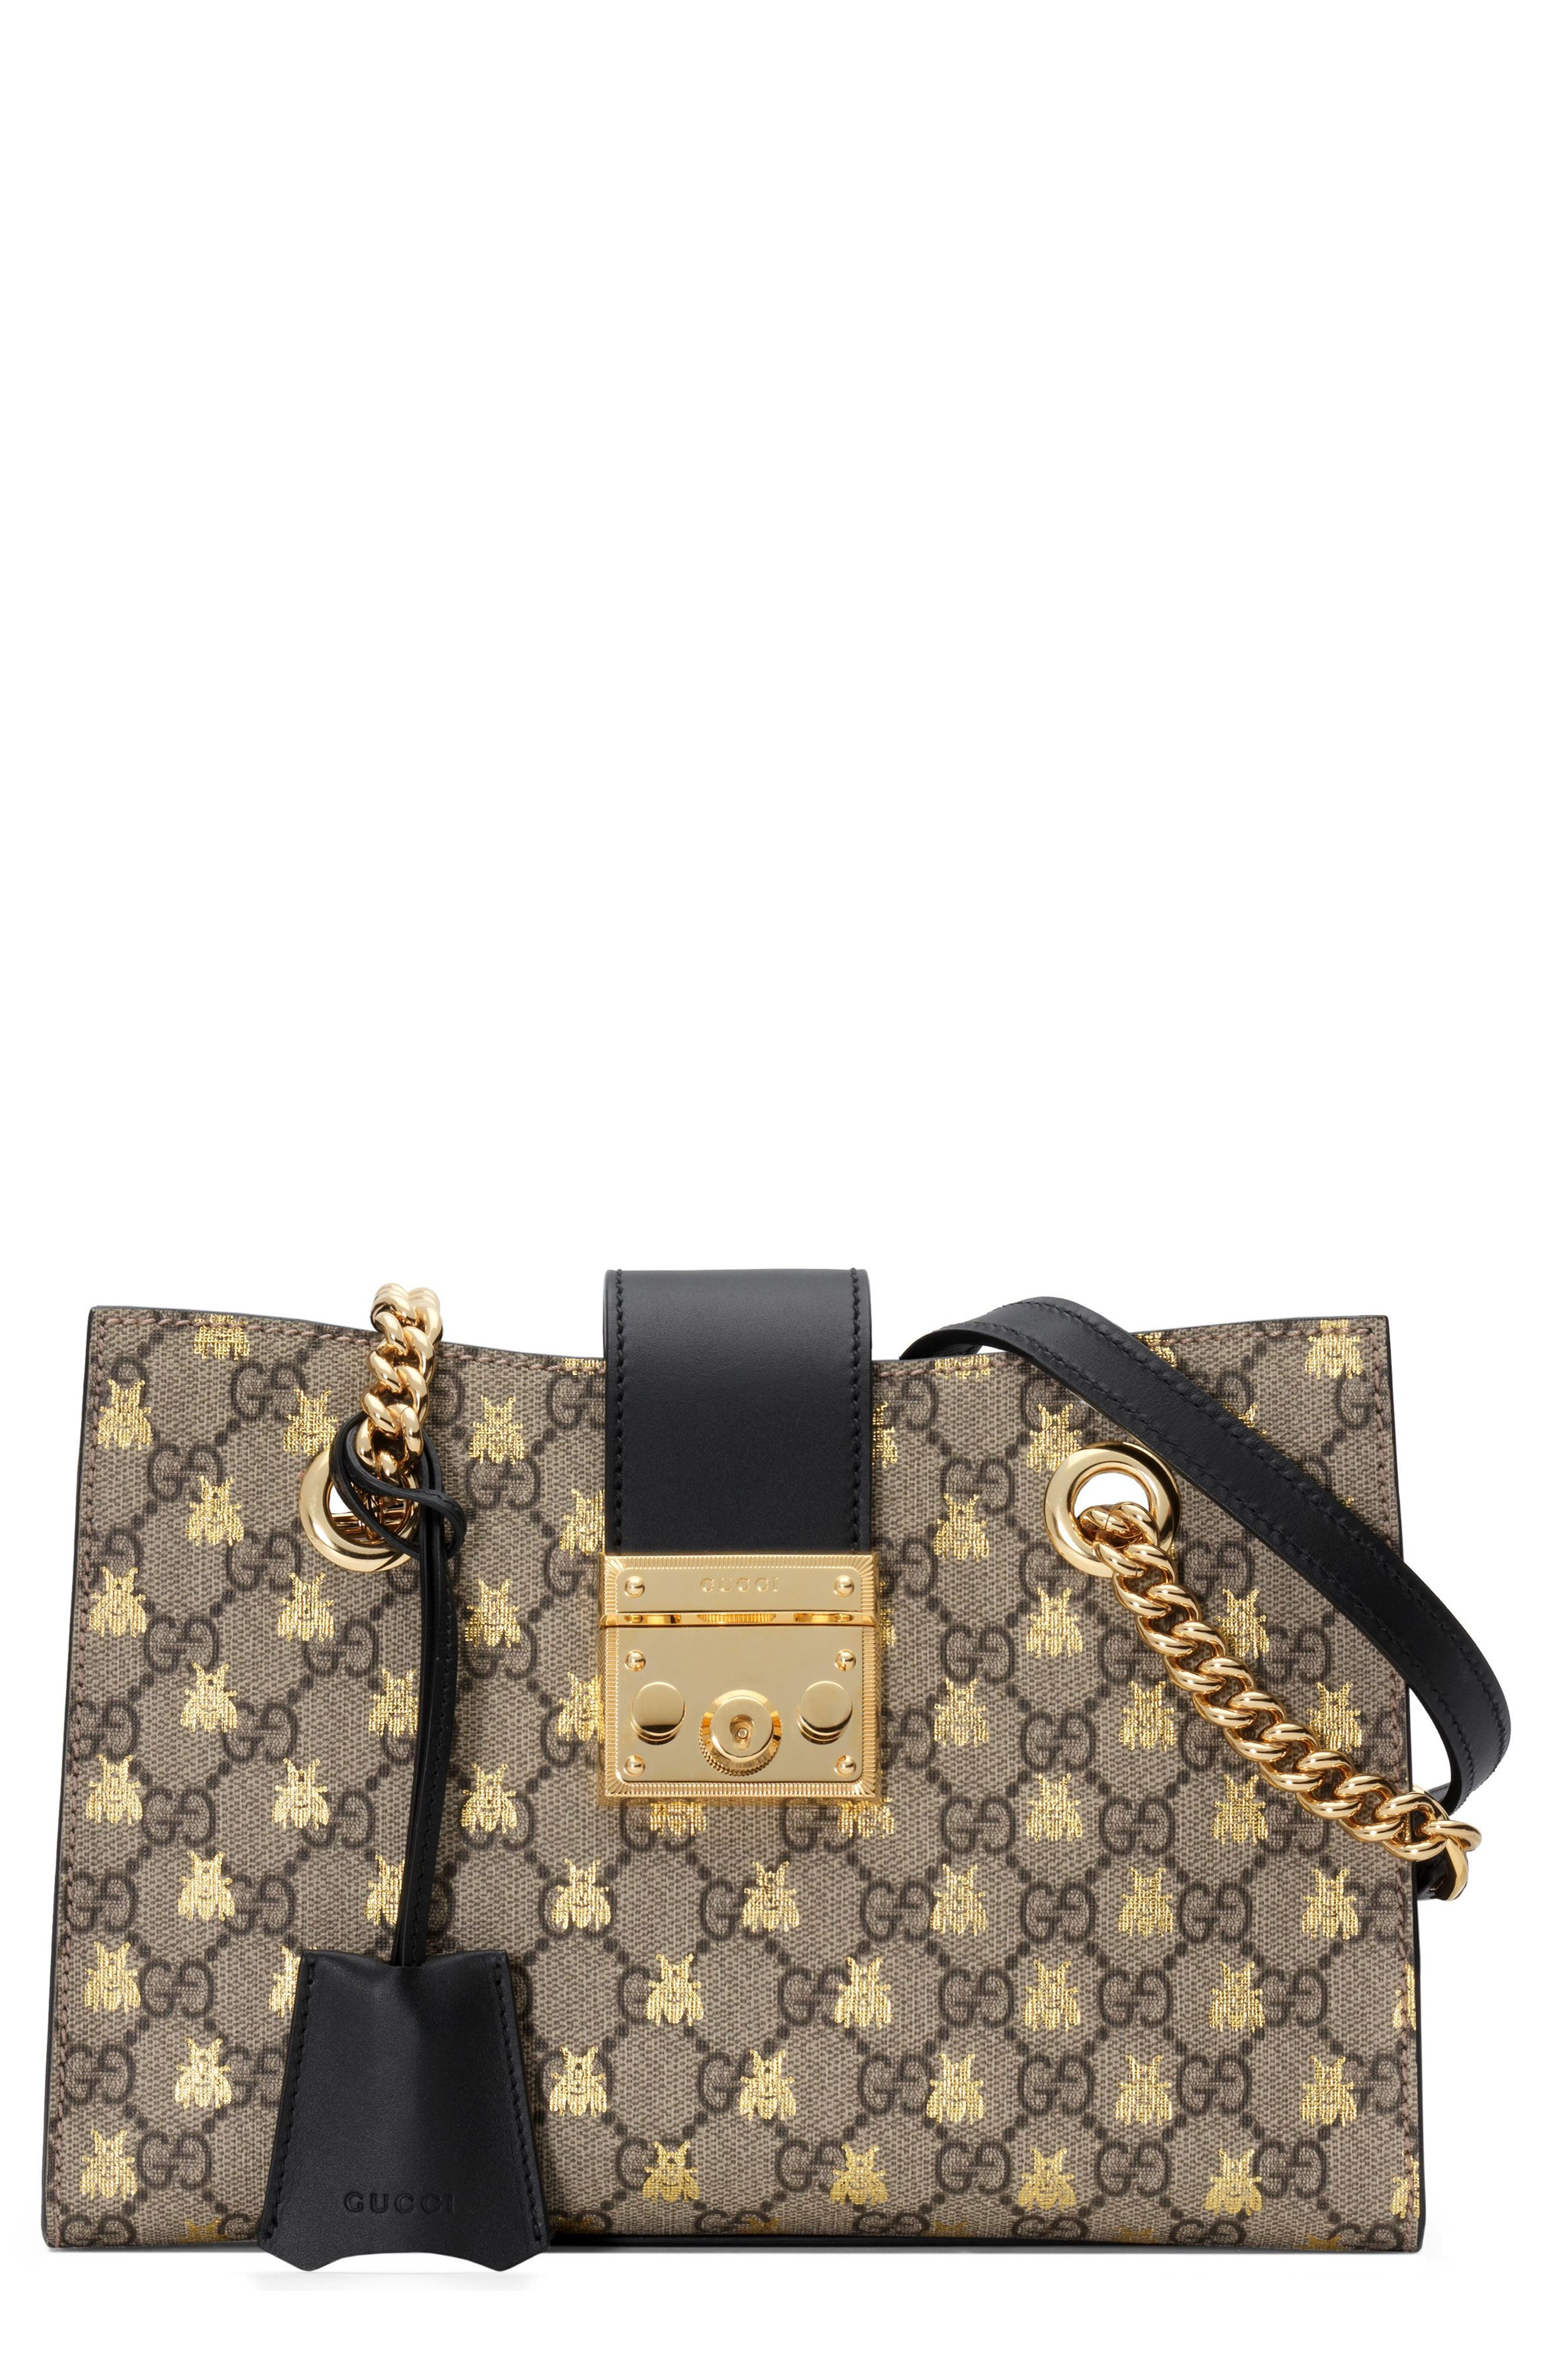 Gucci Small Padlock GG Supreme Bee Shoulder Bag